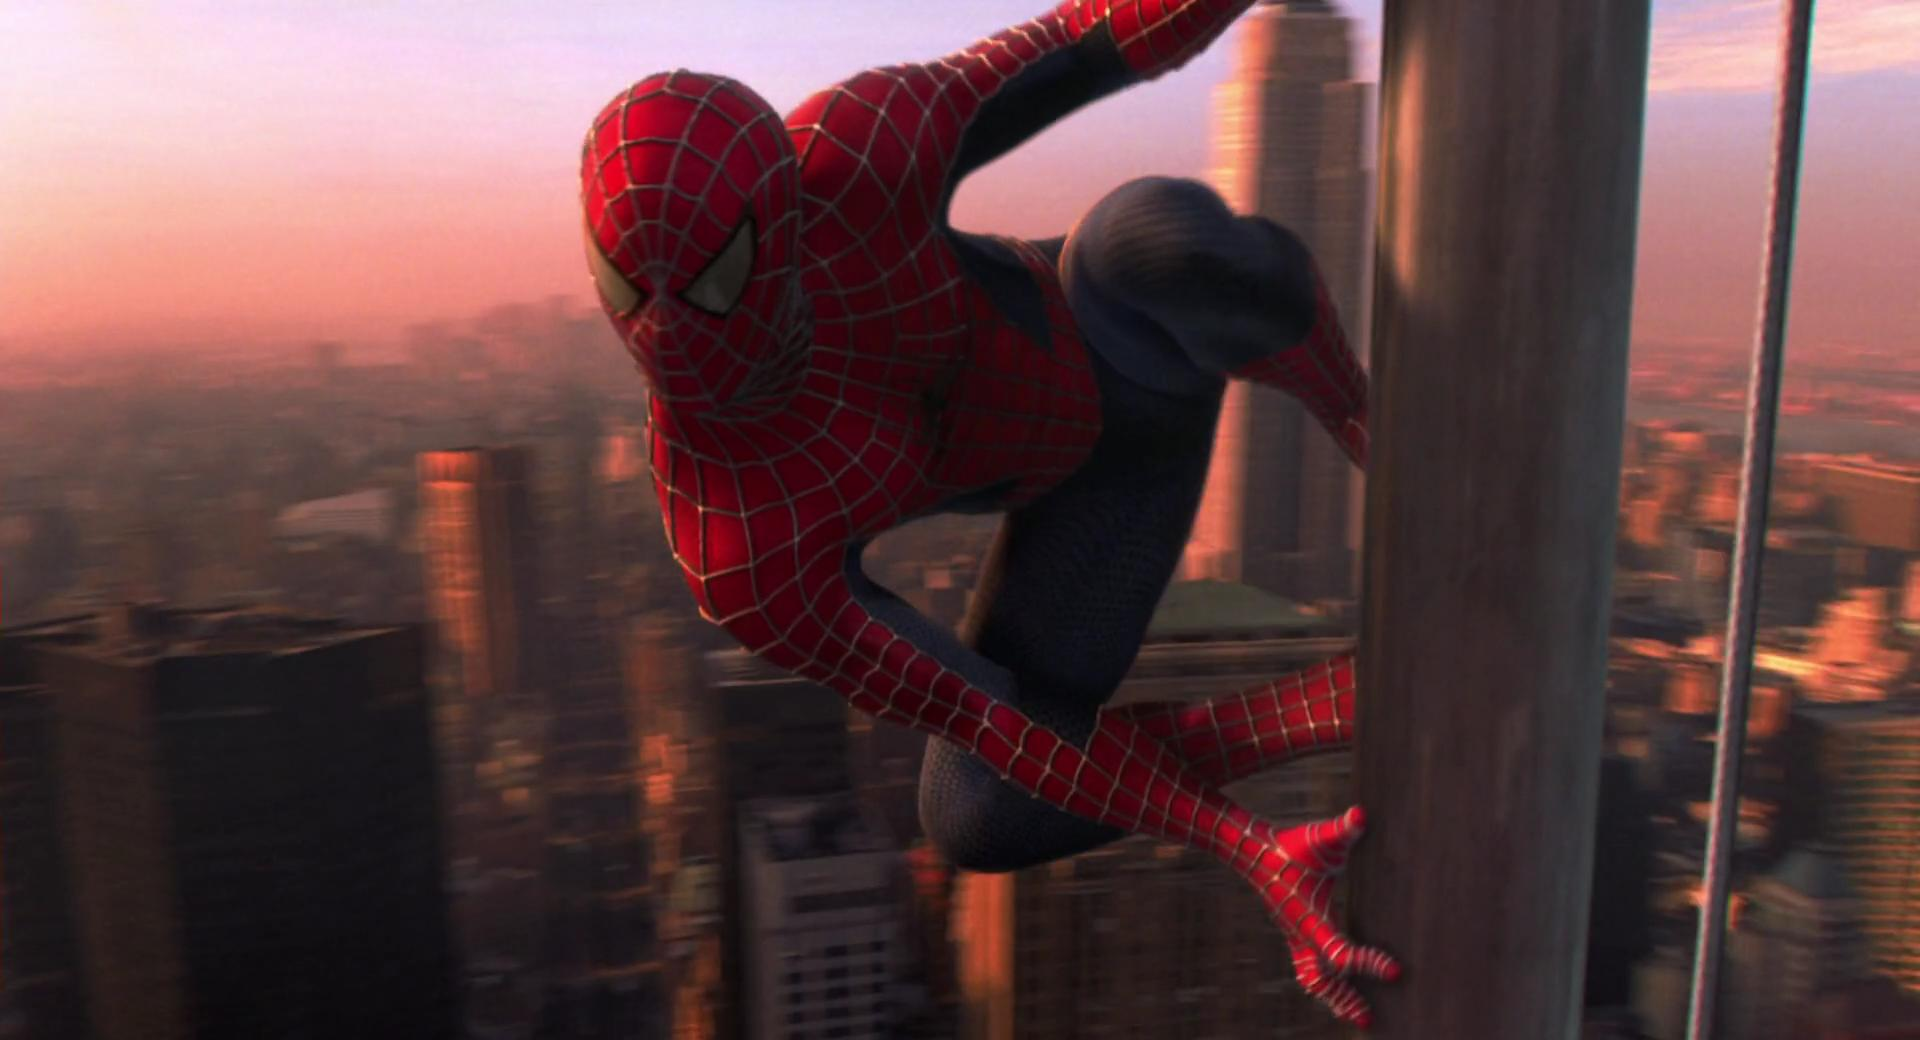 Spider man directors radical redesigns for each reboot - New spiderman movie wallpaper ...